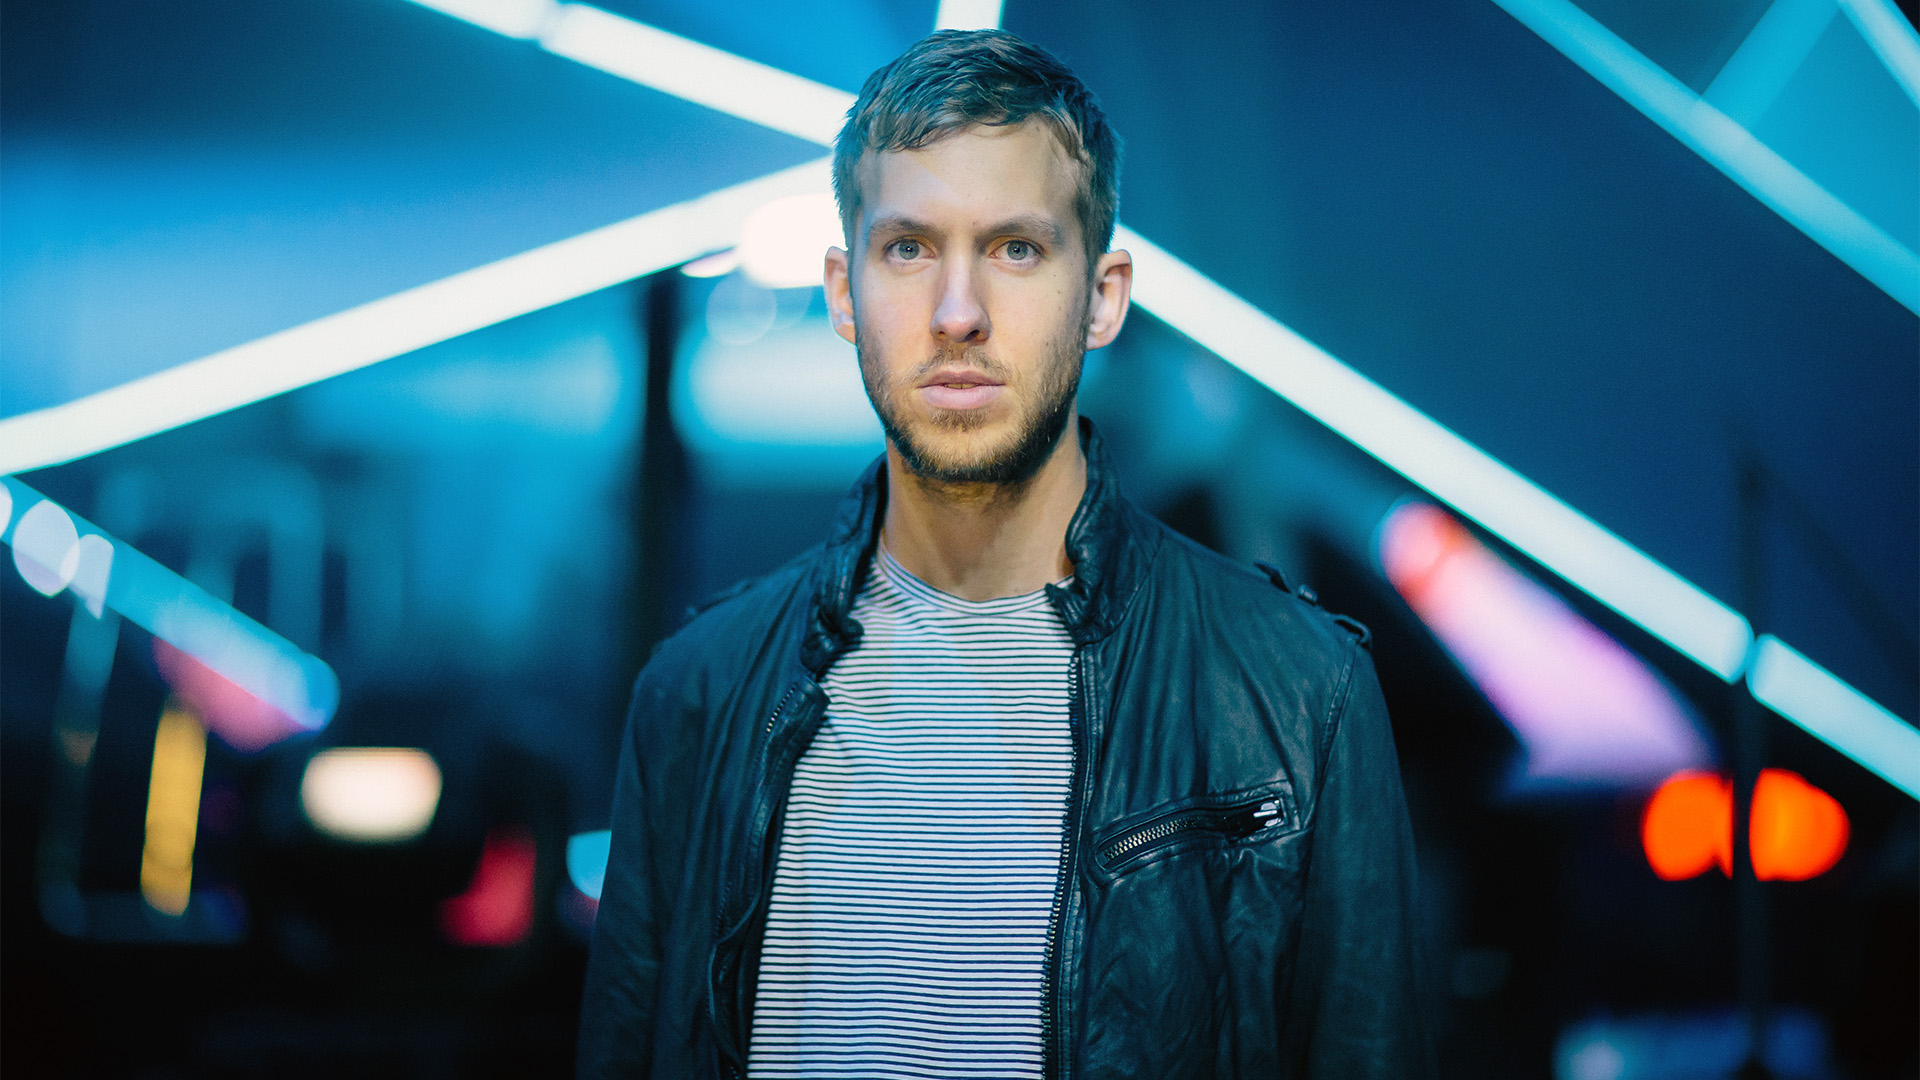 This Is What You Came For av Calvin Harris